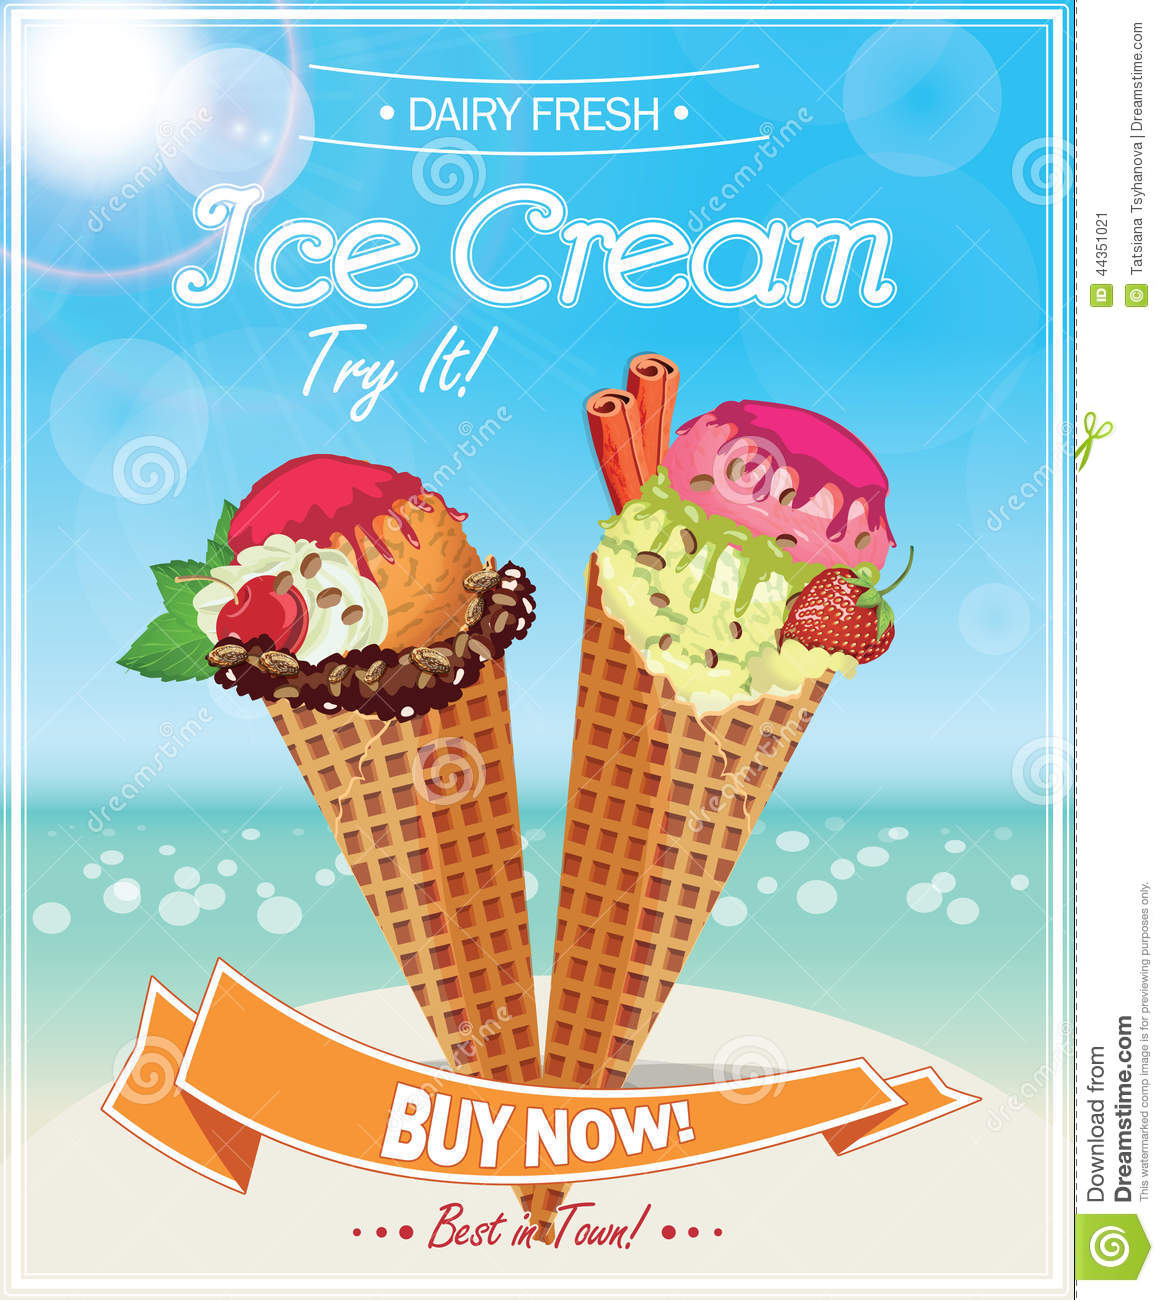 Ice Cream Poster. Stock Vector - Image: 44351021